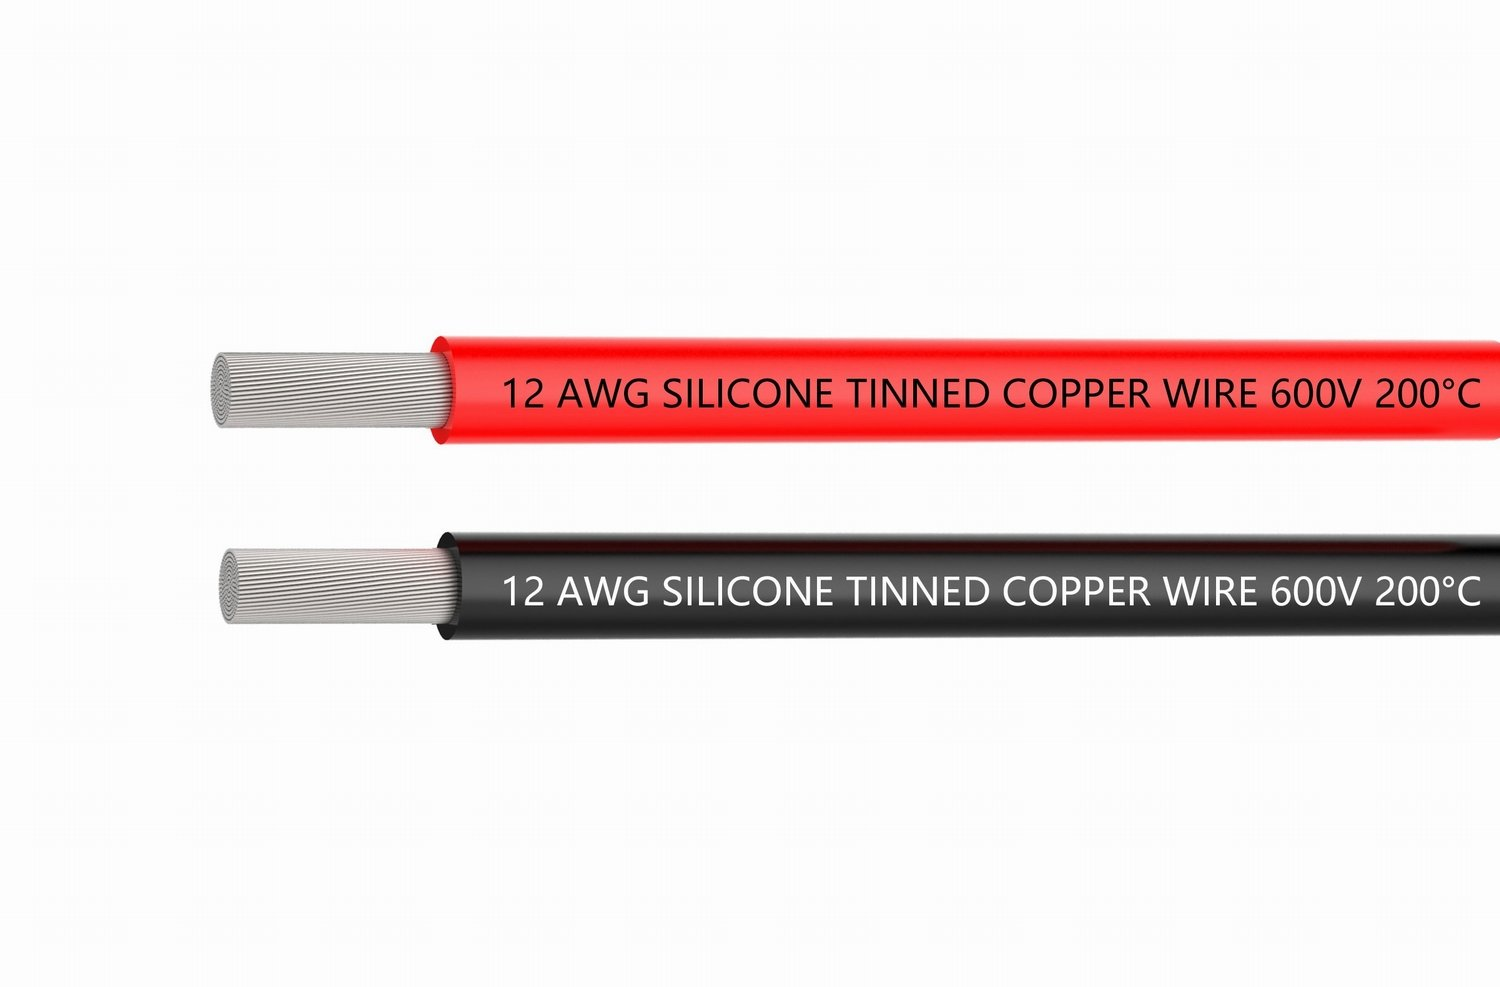 TUOFENG 12 Gauge Electrical Wire 20 Feet [10 ft Black And 10 ft Red] wire - 12 AWG Silicone Wire - Flexible Silicone Wire Works Well for RC car, drone, helicopter and airplane battery and engine wire